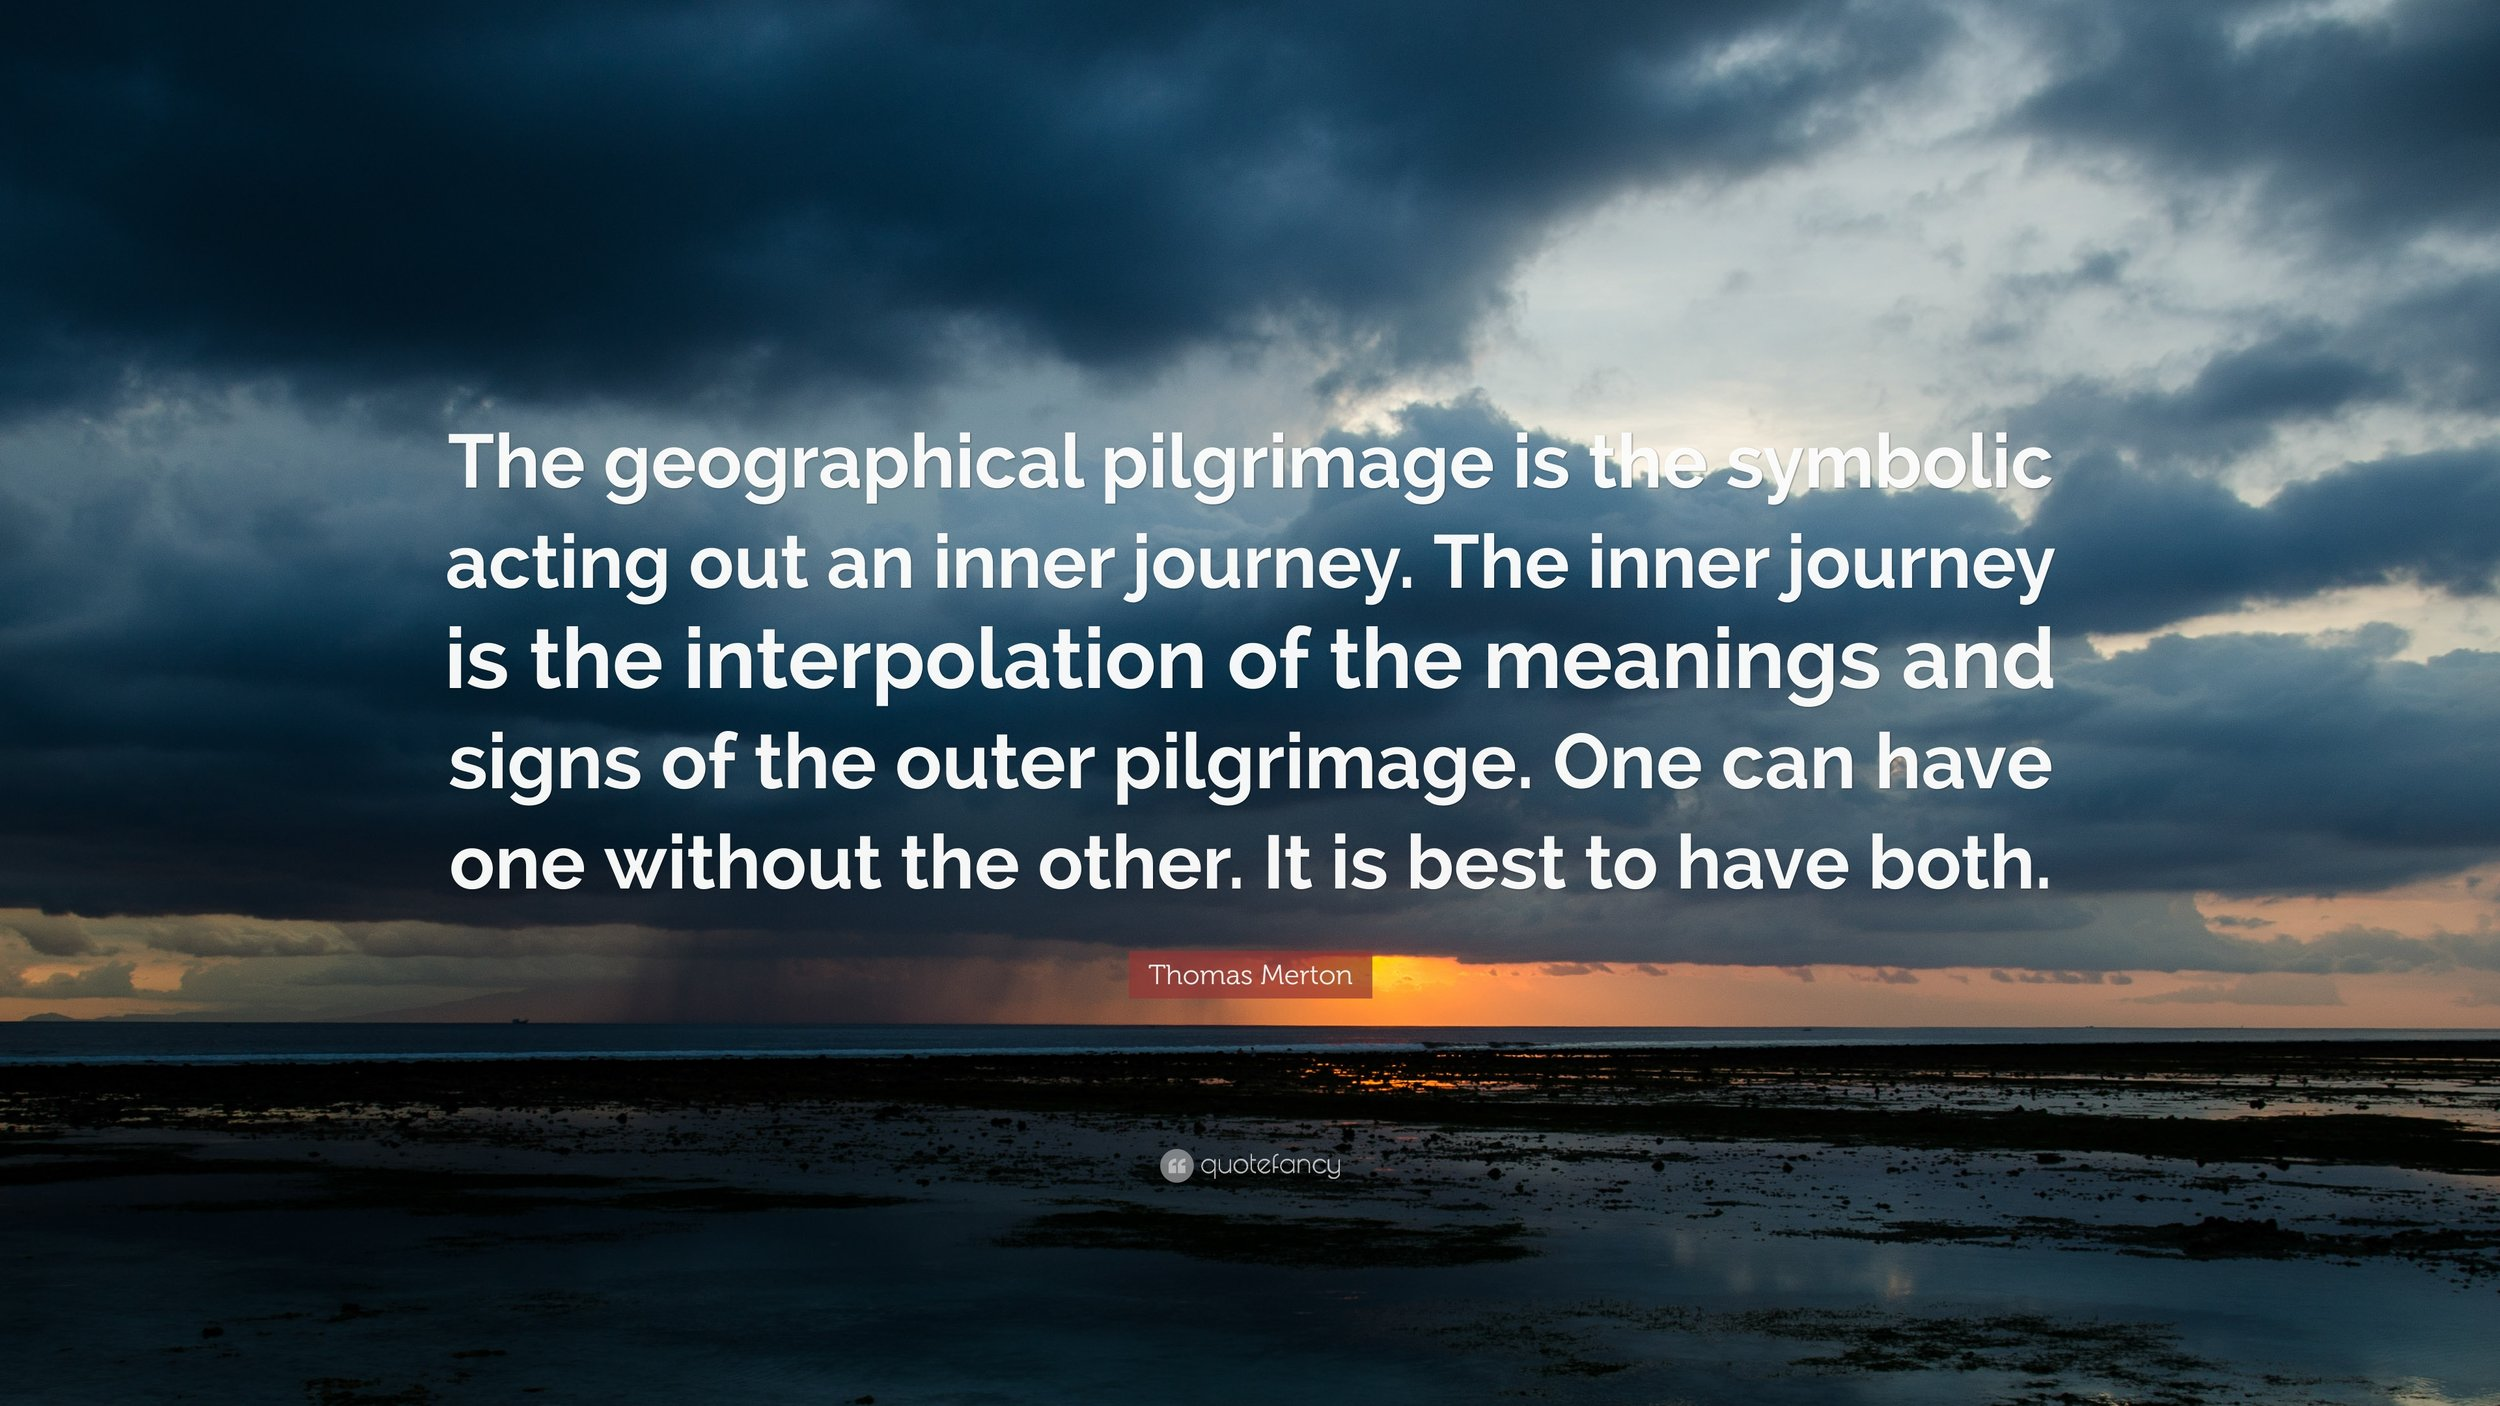 173896-Thomas-Merton-Quote-The-geographical-pilgrimage-is-the-symbolic.jpg